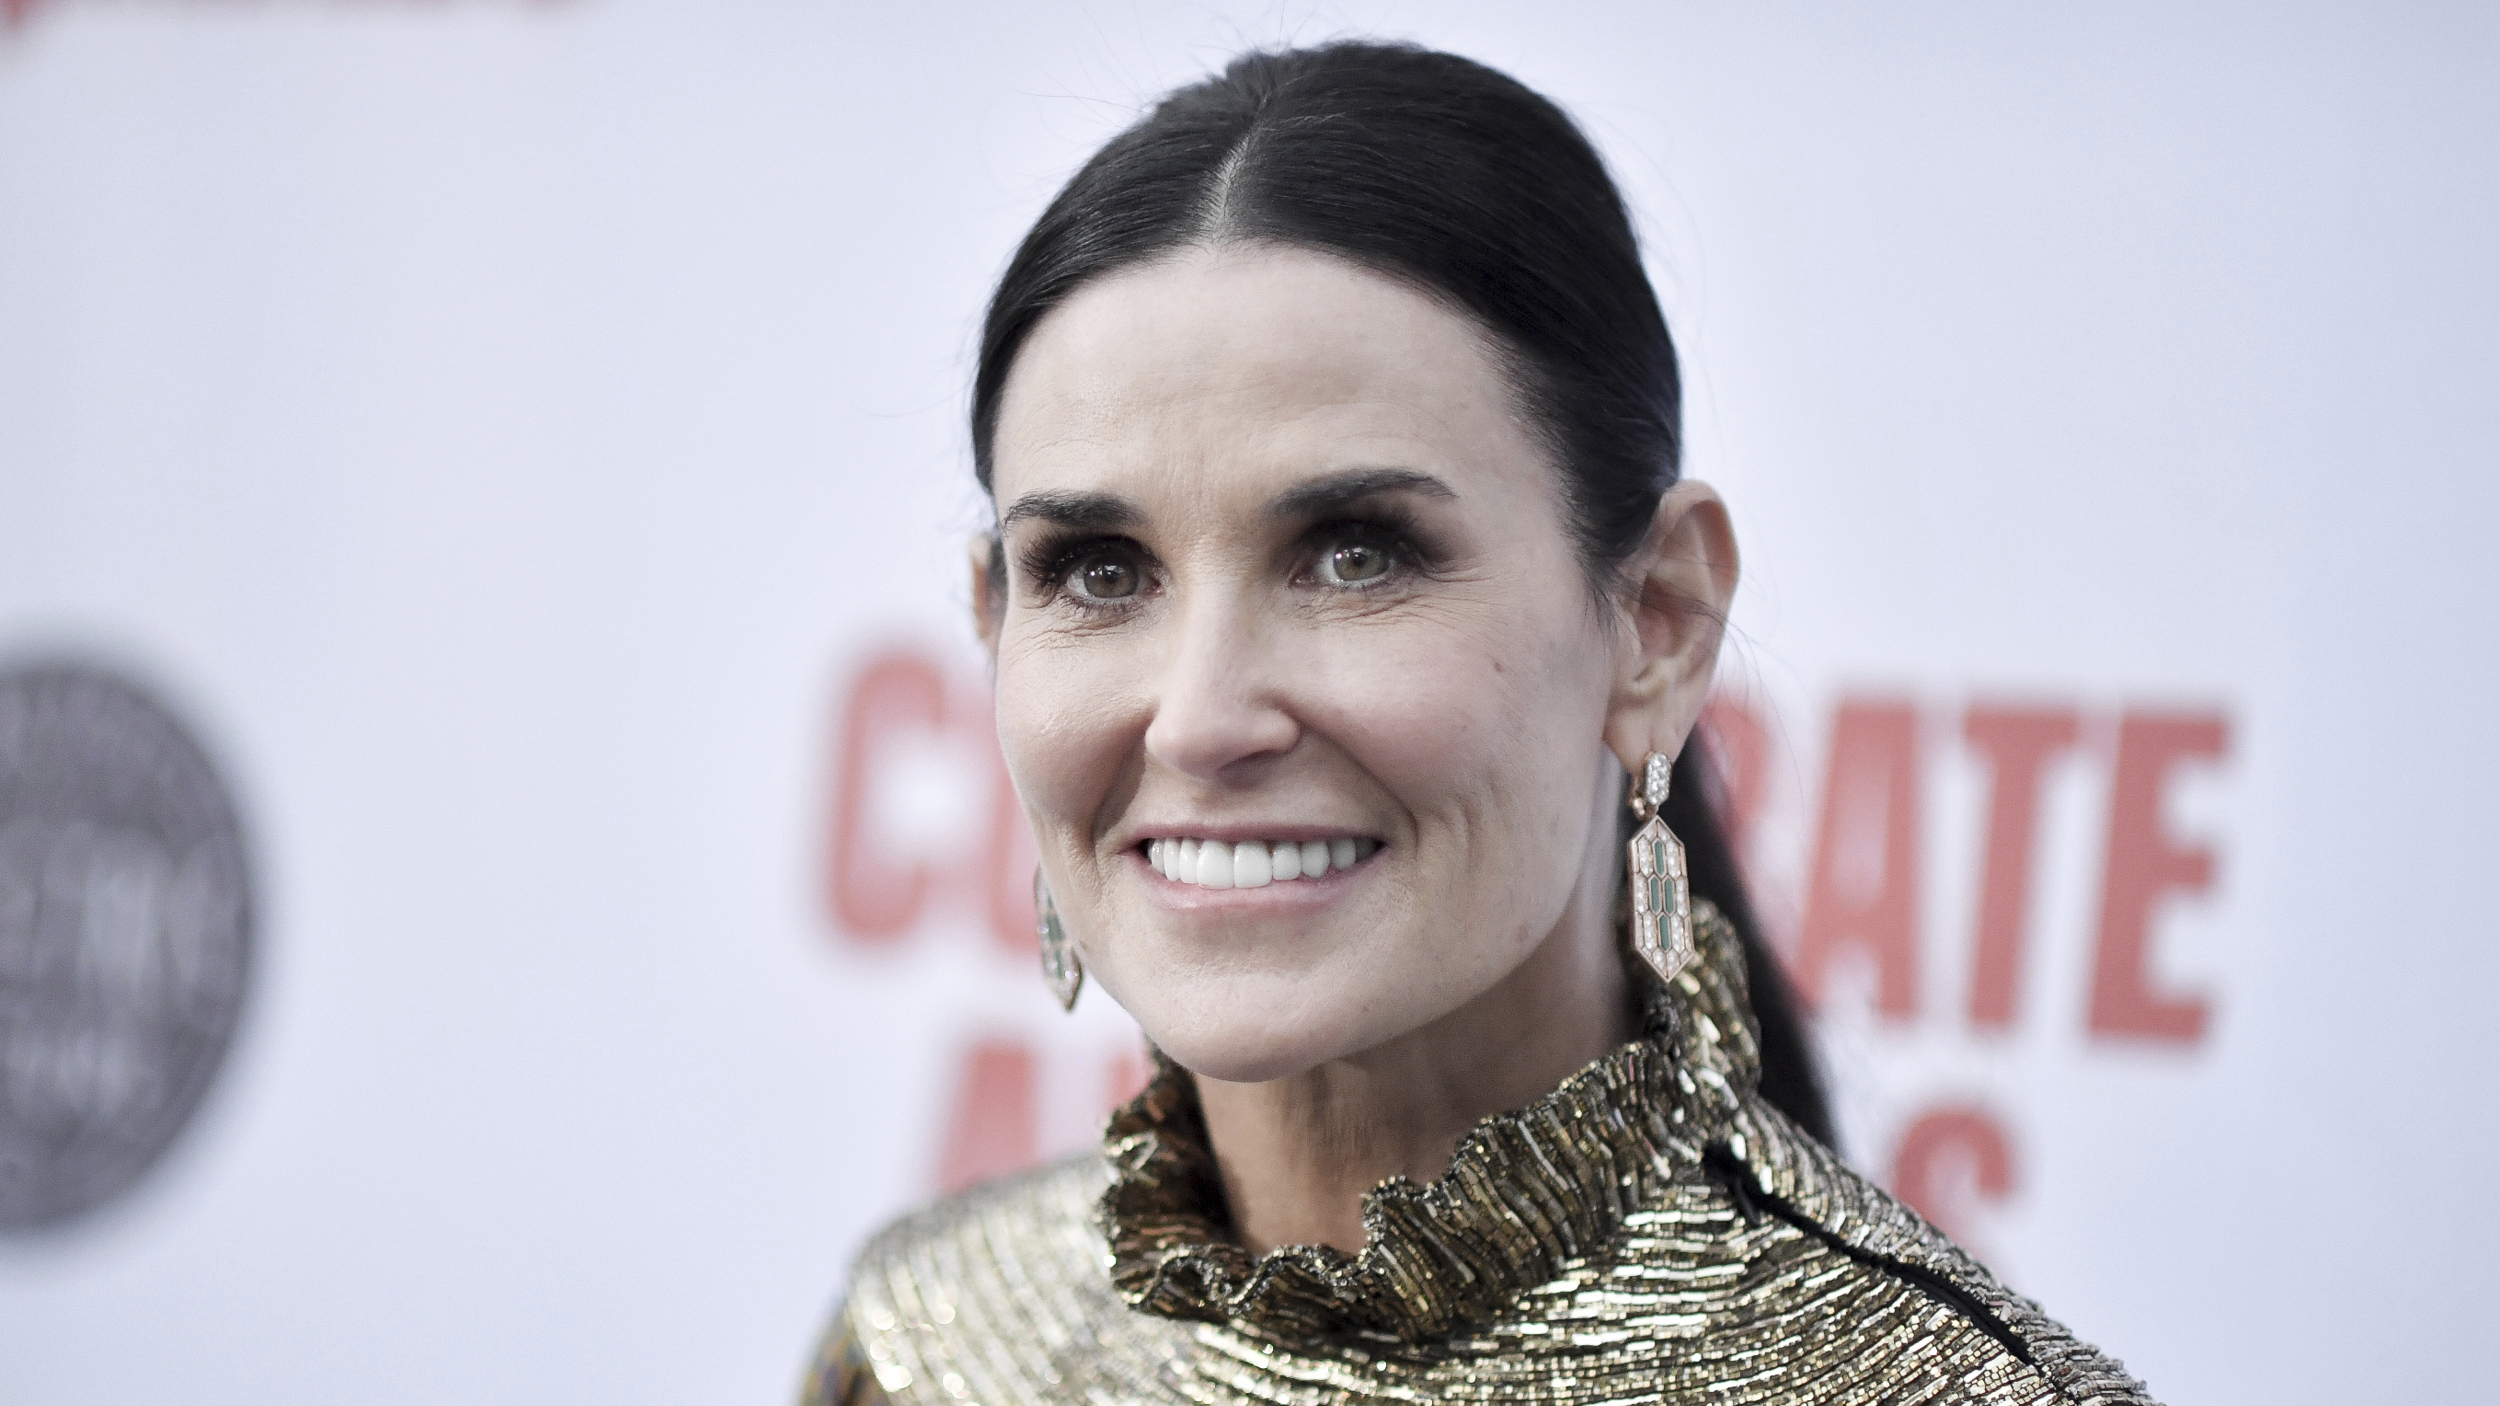 Pics of Demi Moore's unique bathroom send social media into a frenzy: 'Trying to understand'